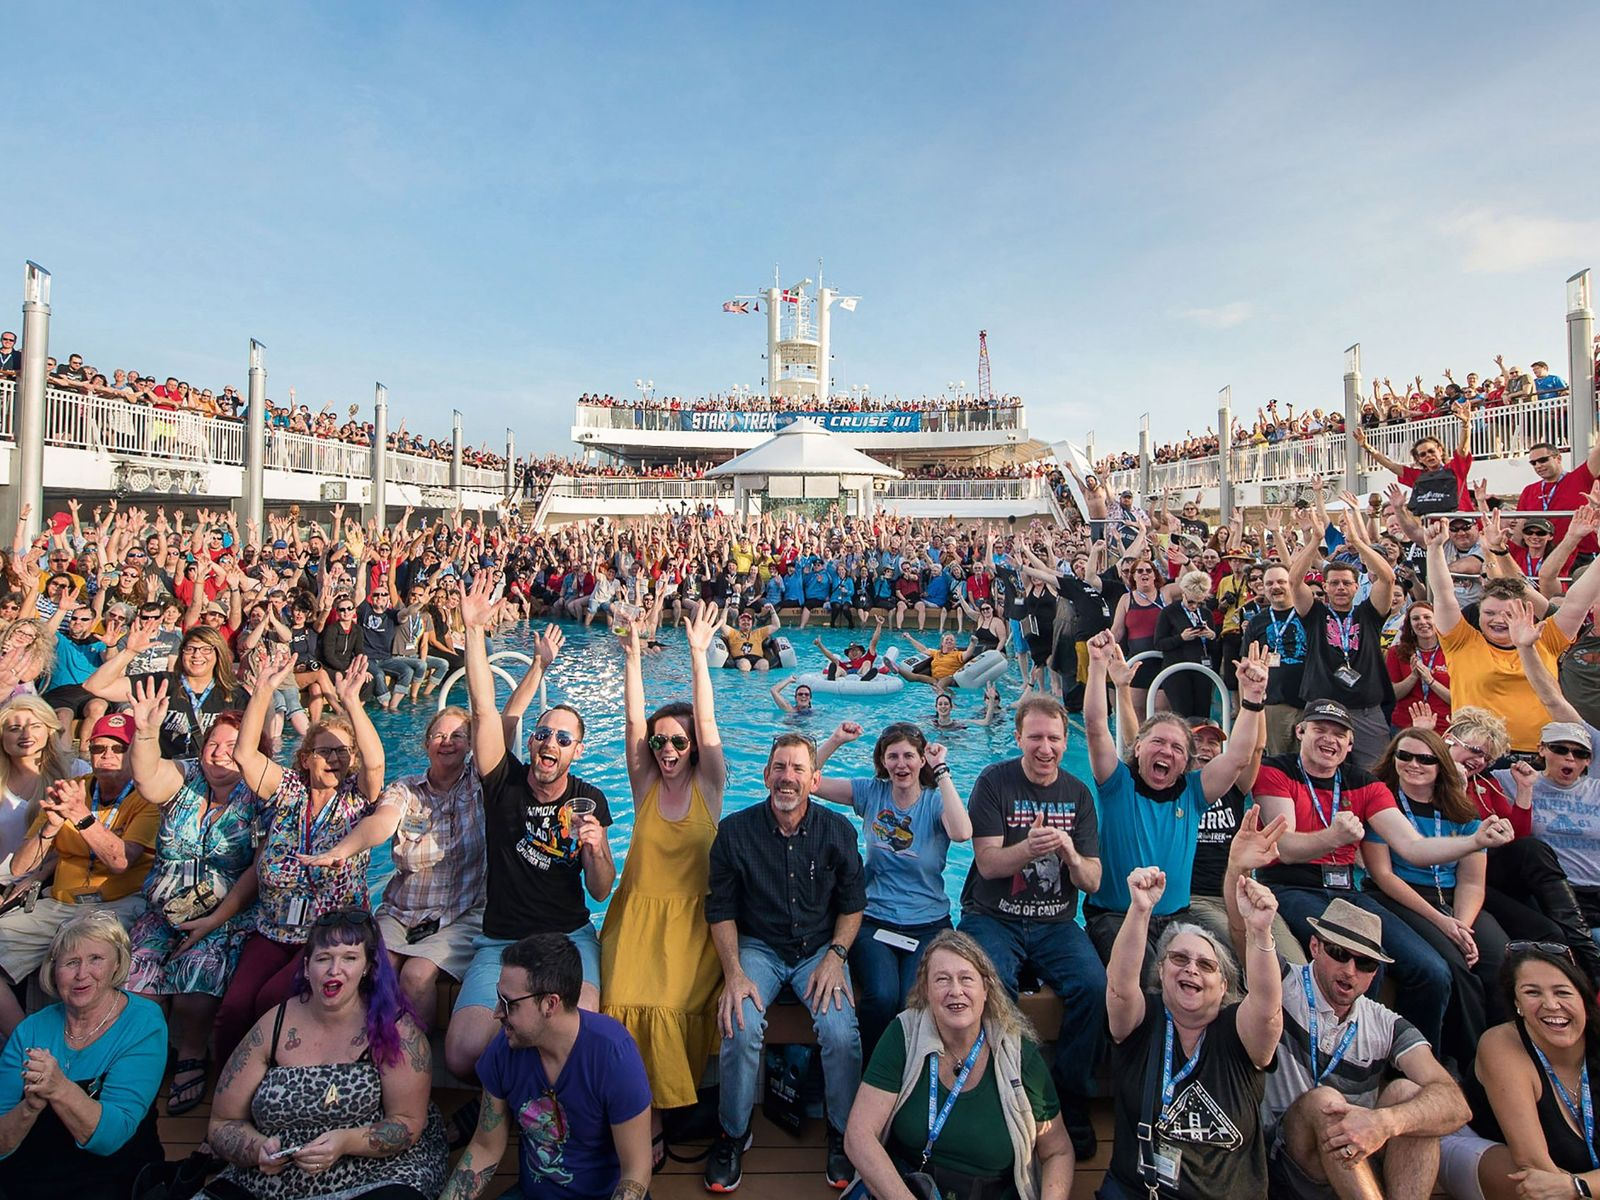 In recent years, special interest cruises have seen everything from Britpop sailings to Amsterdam, to electro ...